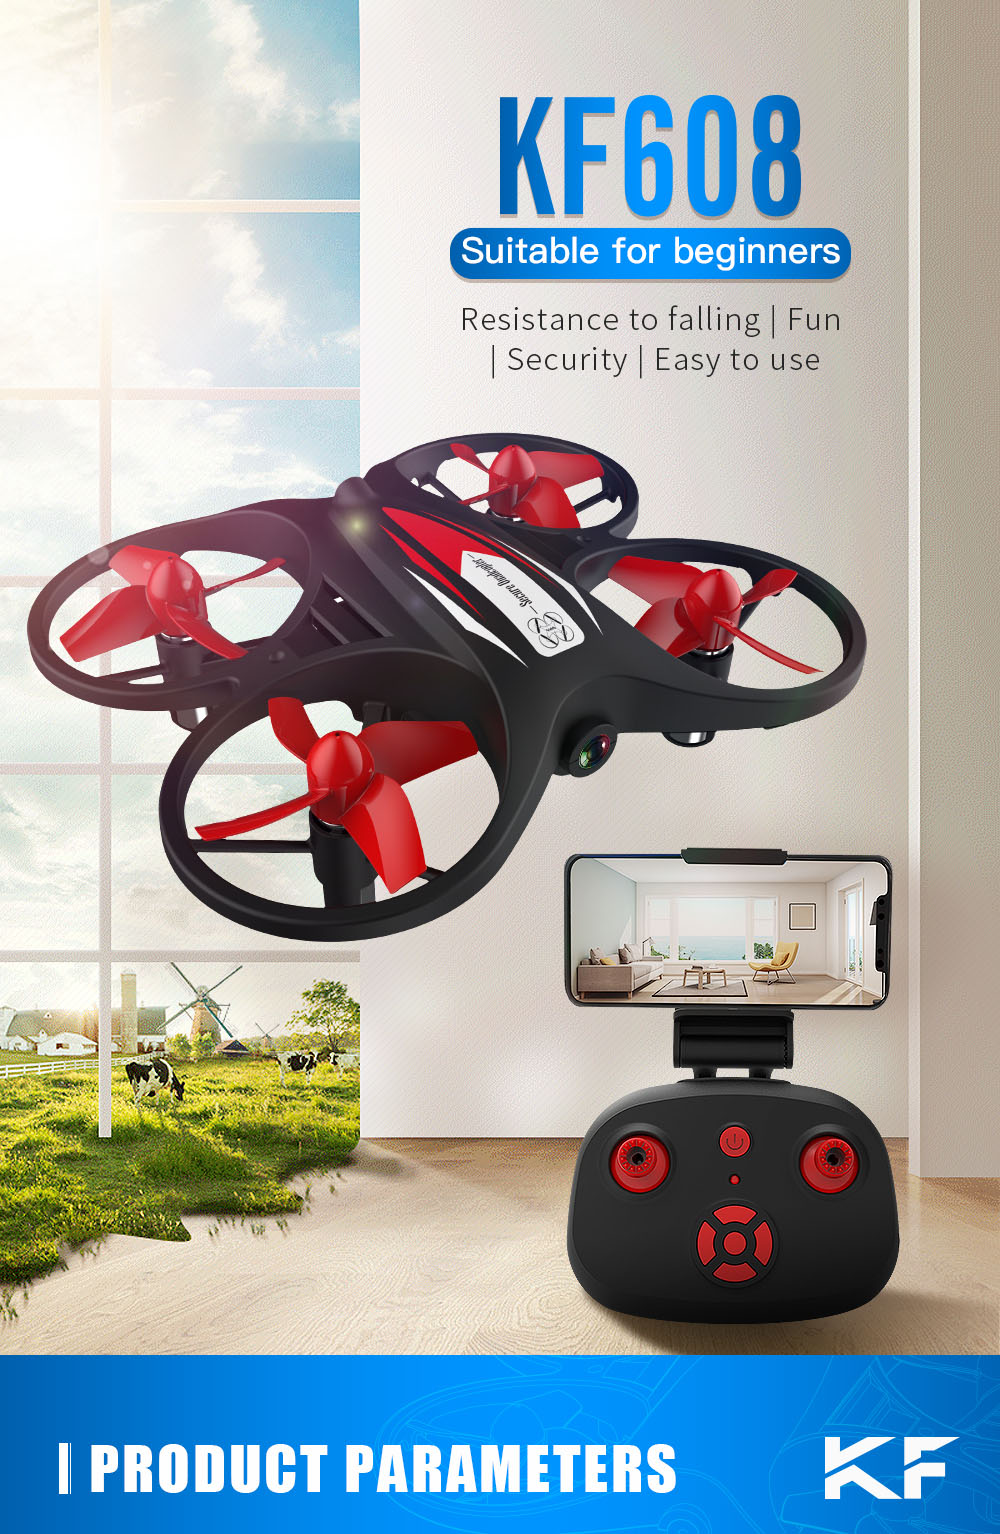 KF608 2.4GHz Wireless Remote Control Mini RC Quadcopter Drone Toy - Black No Camera With 1 Battery